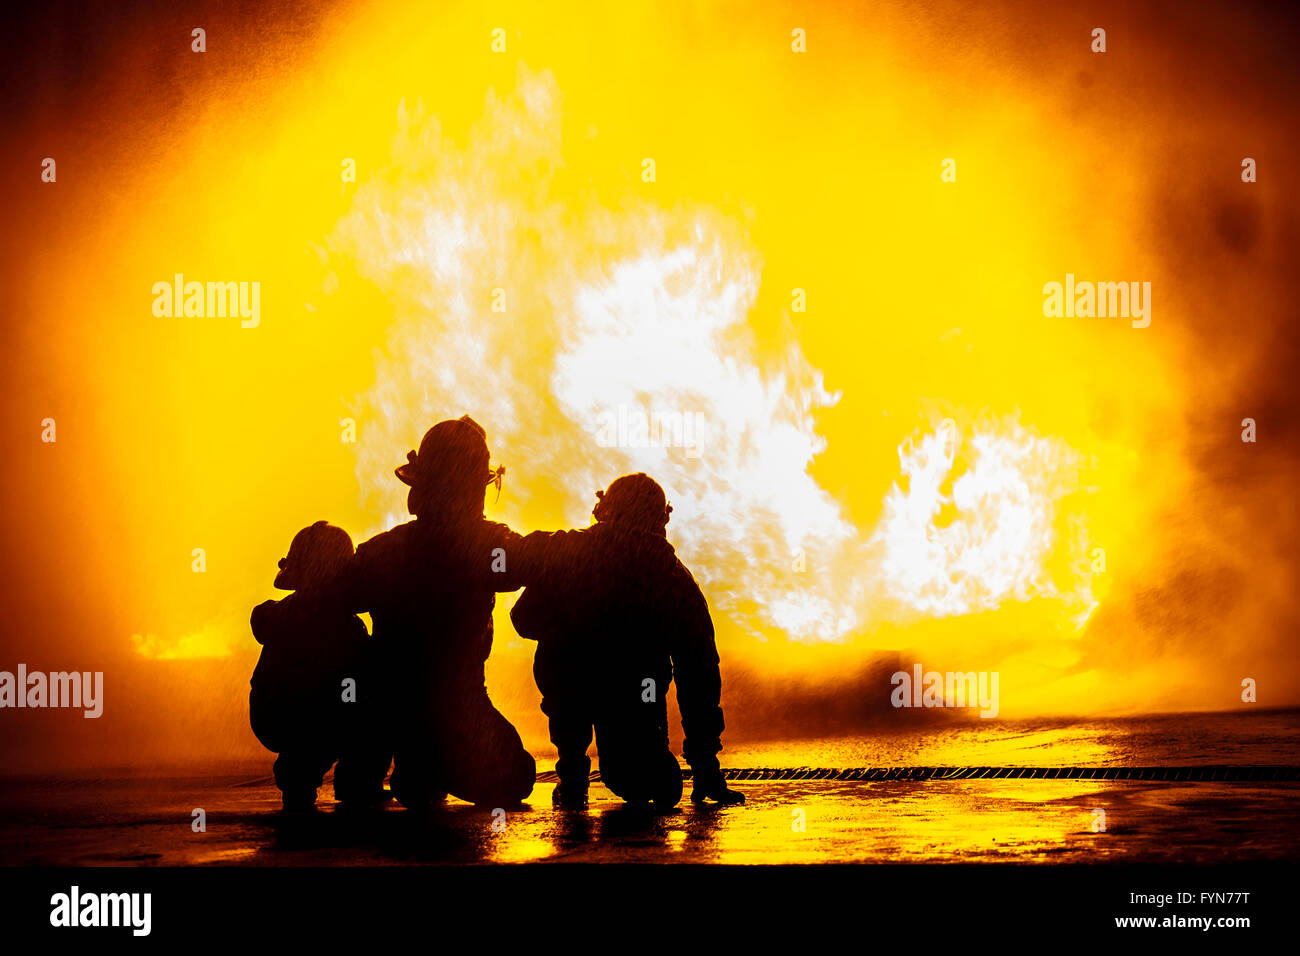 Firefighters in front of a burning tank - Stock Image